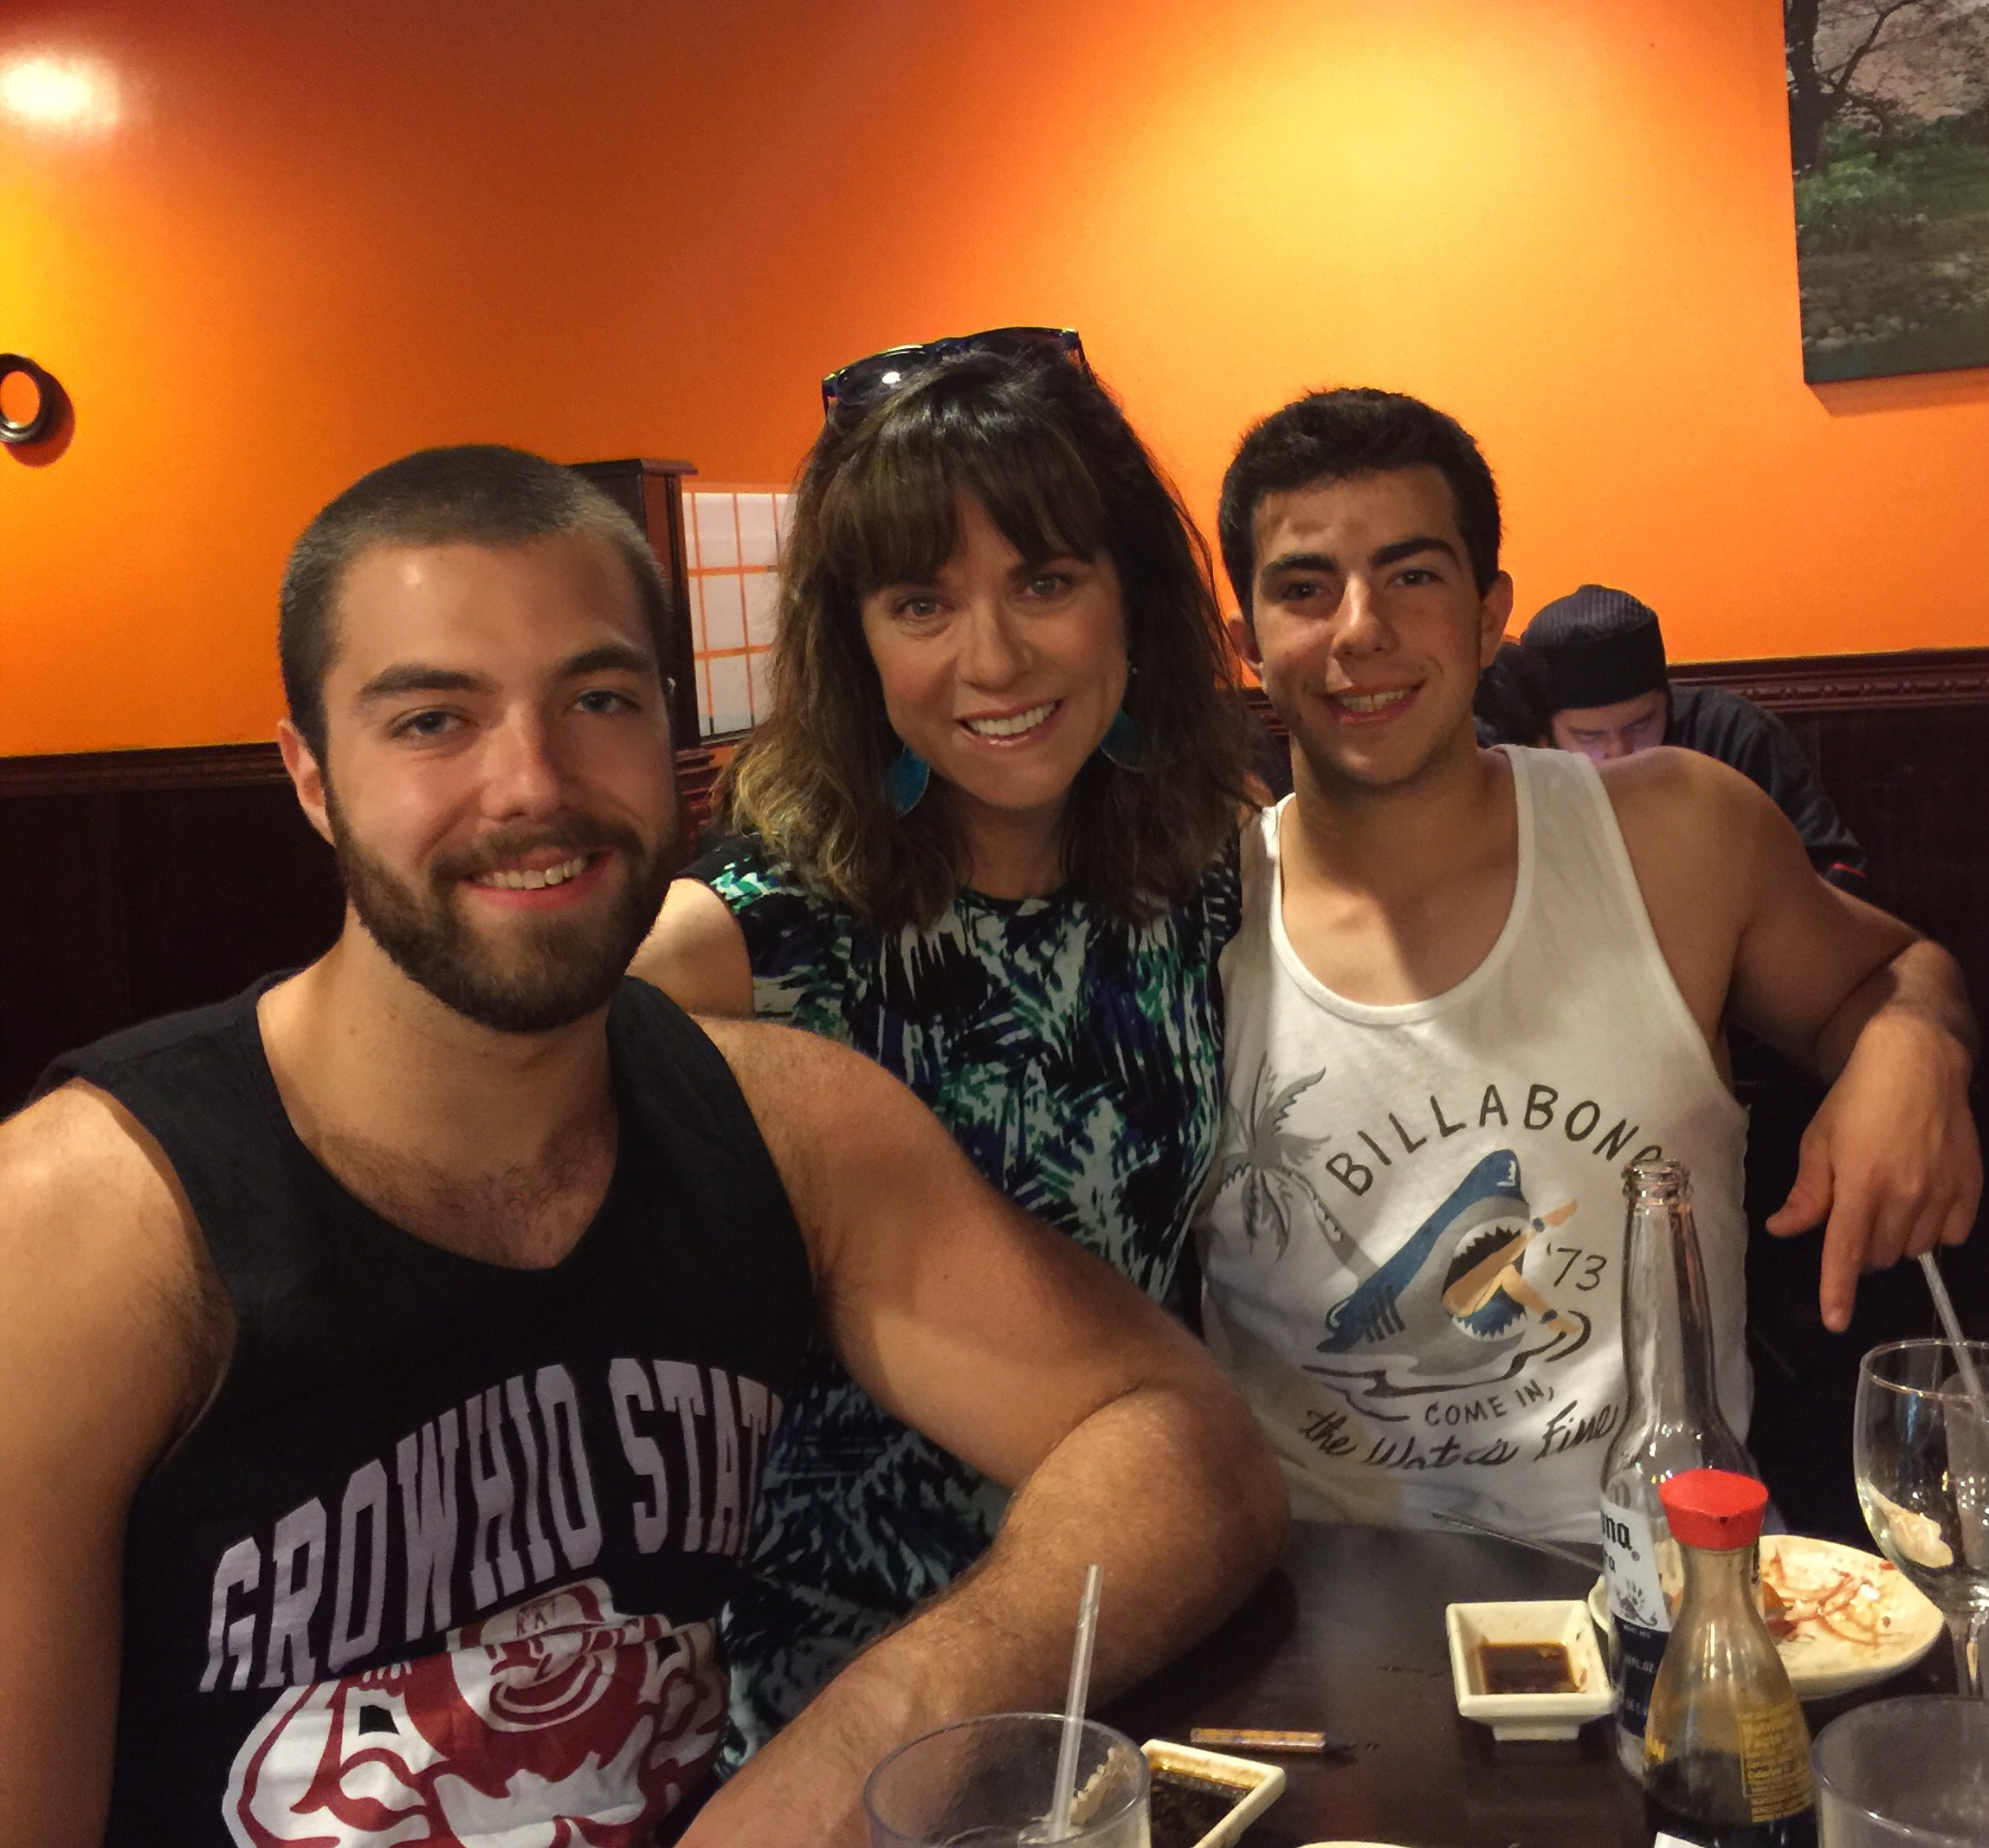 My sons, Zach and Matt, at one of our birthday celebrations for Zach's 20th birthday this year.